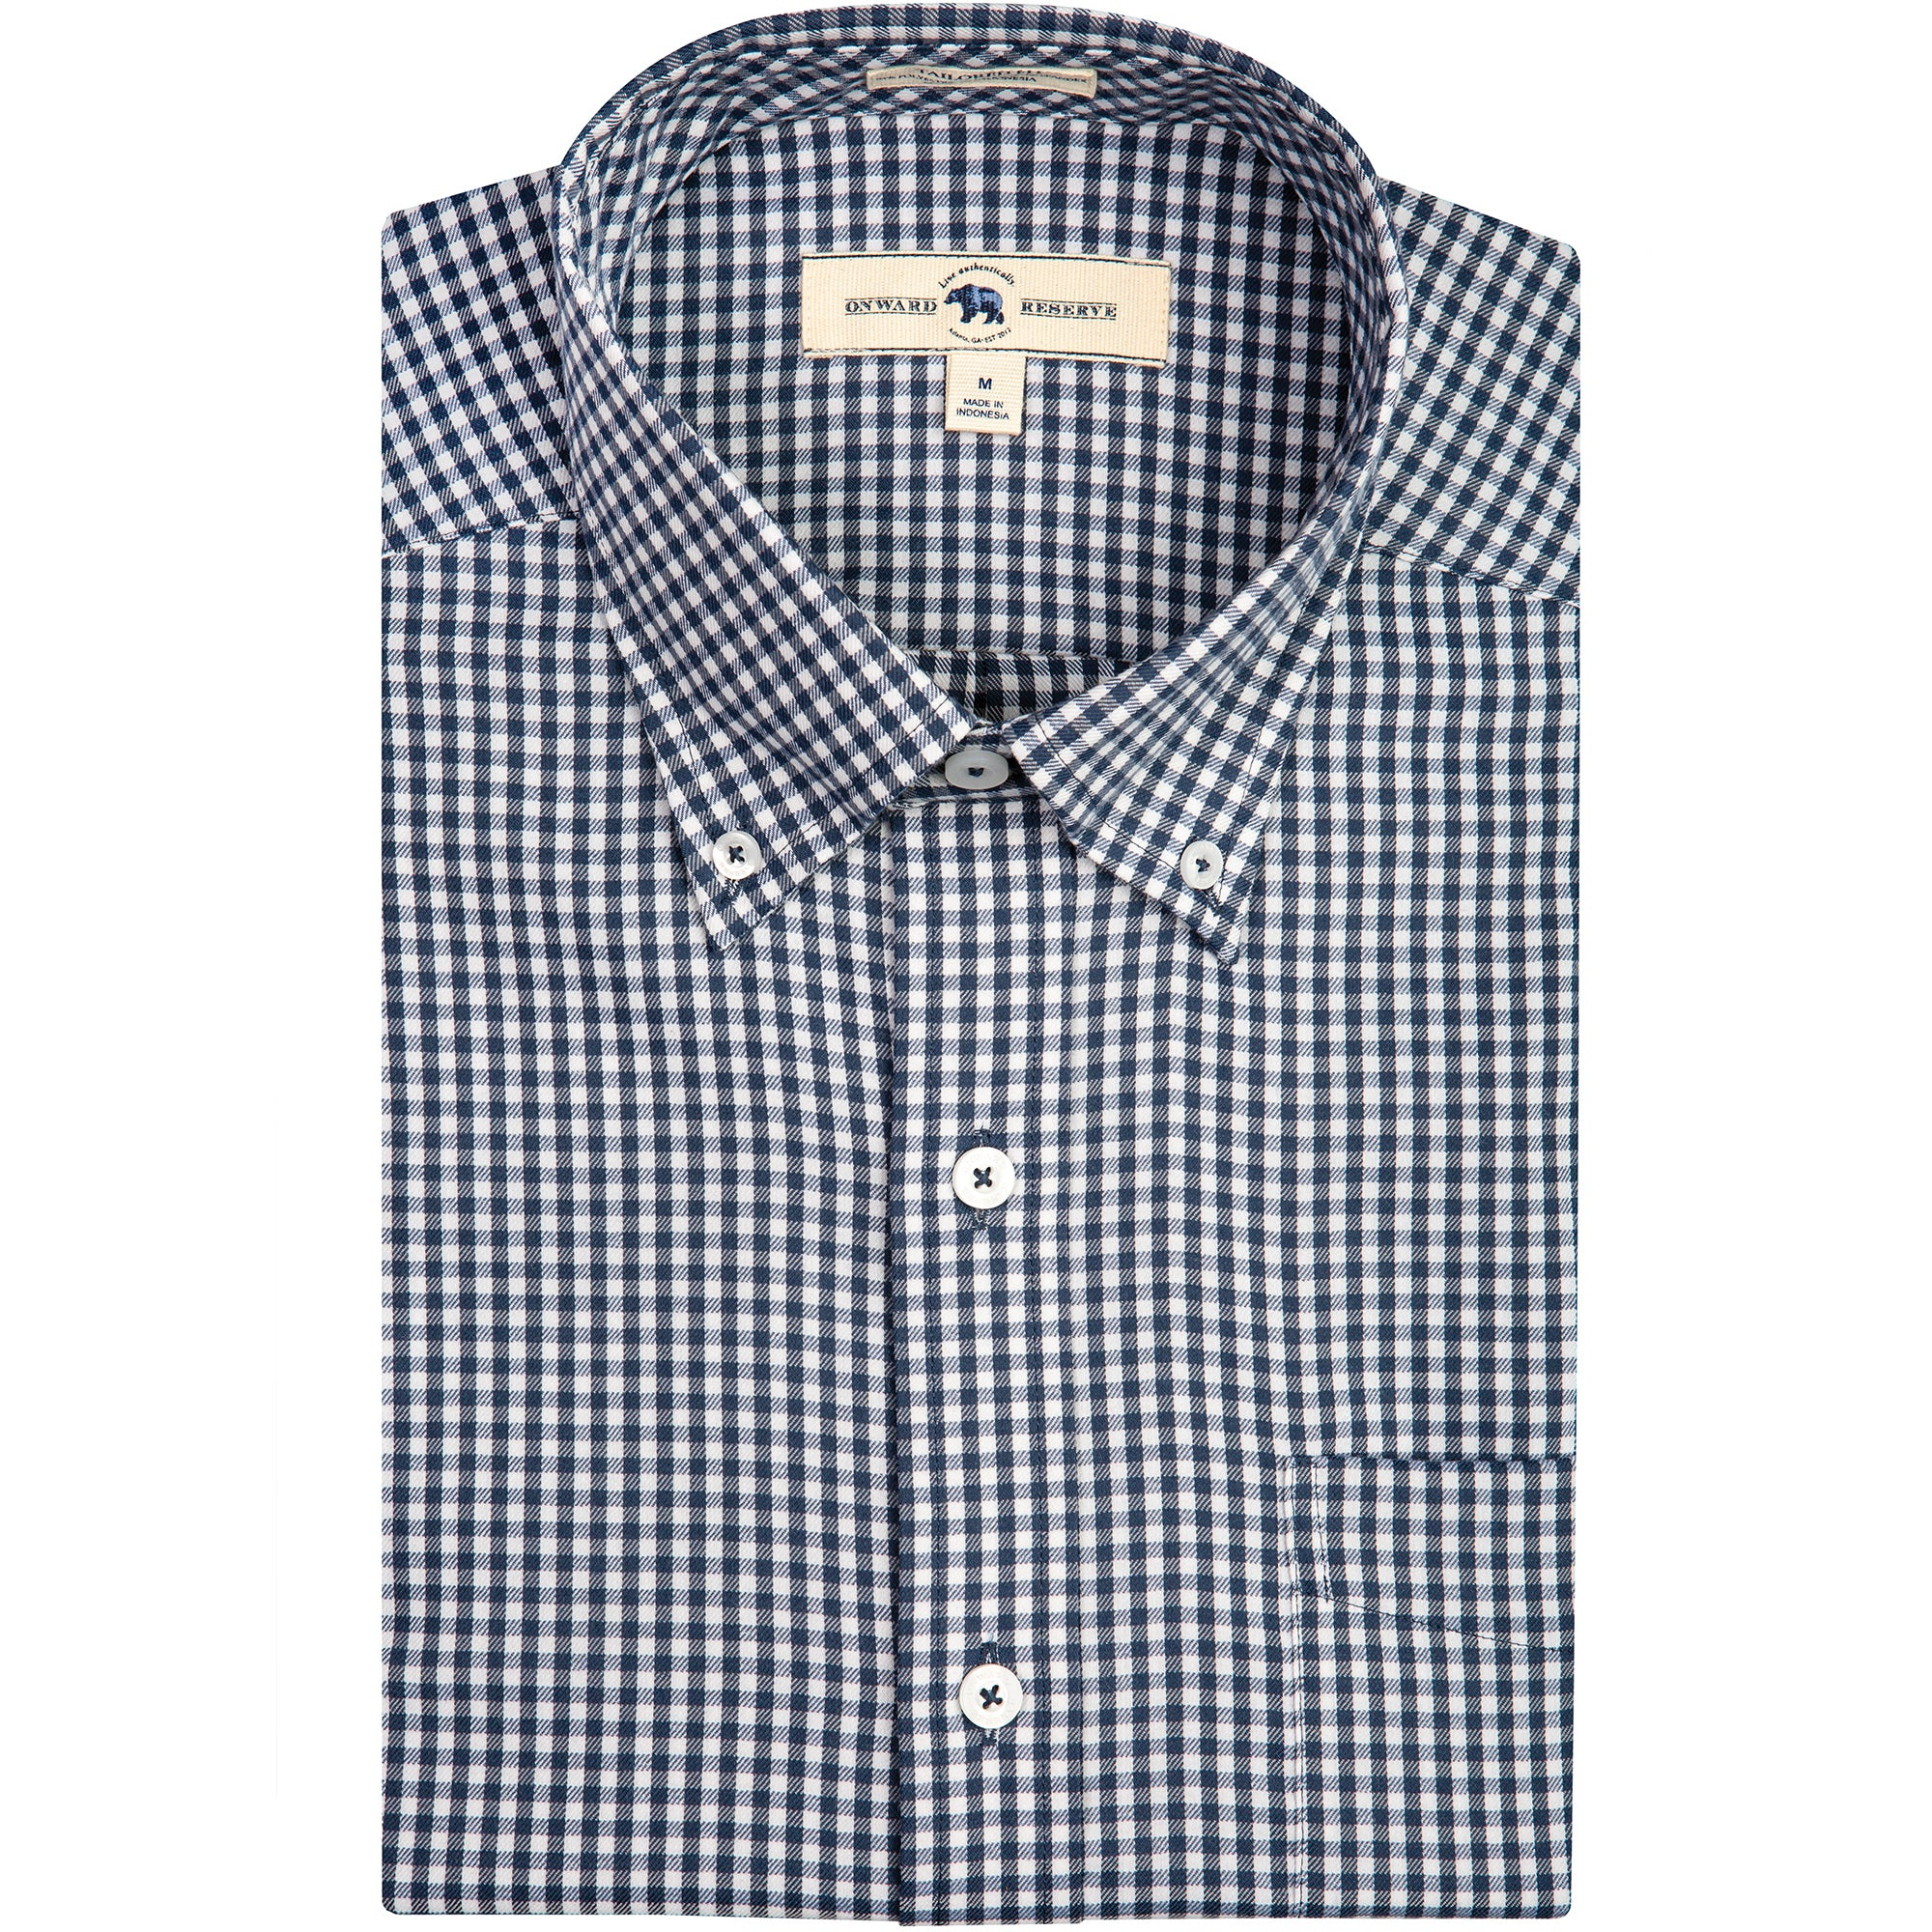 Navy Gingham Tailored Fit Performance Twill Button Down